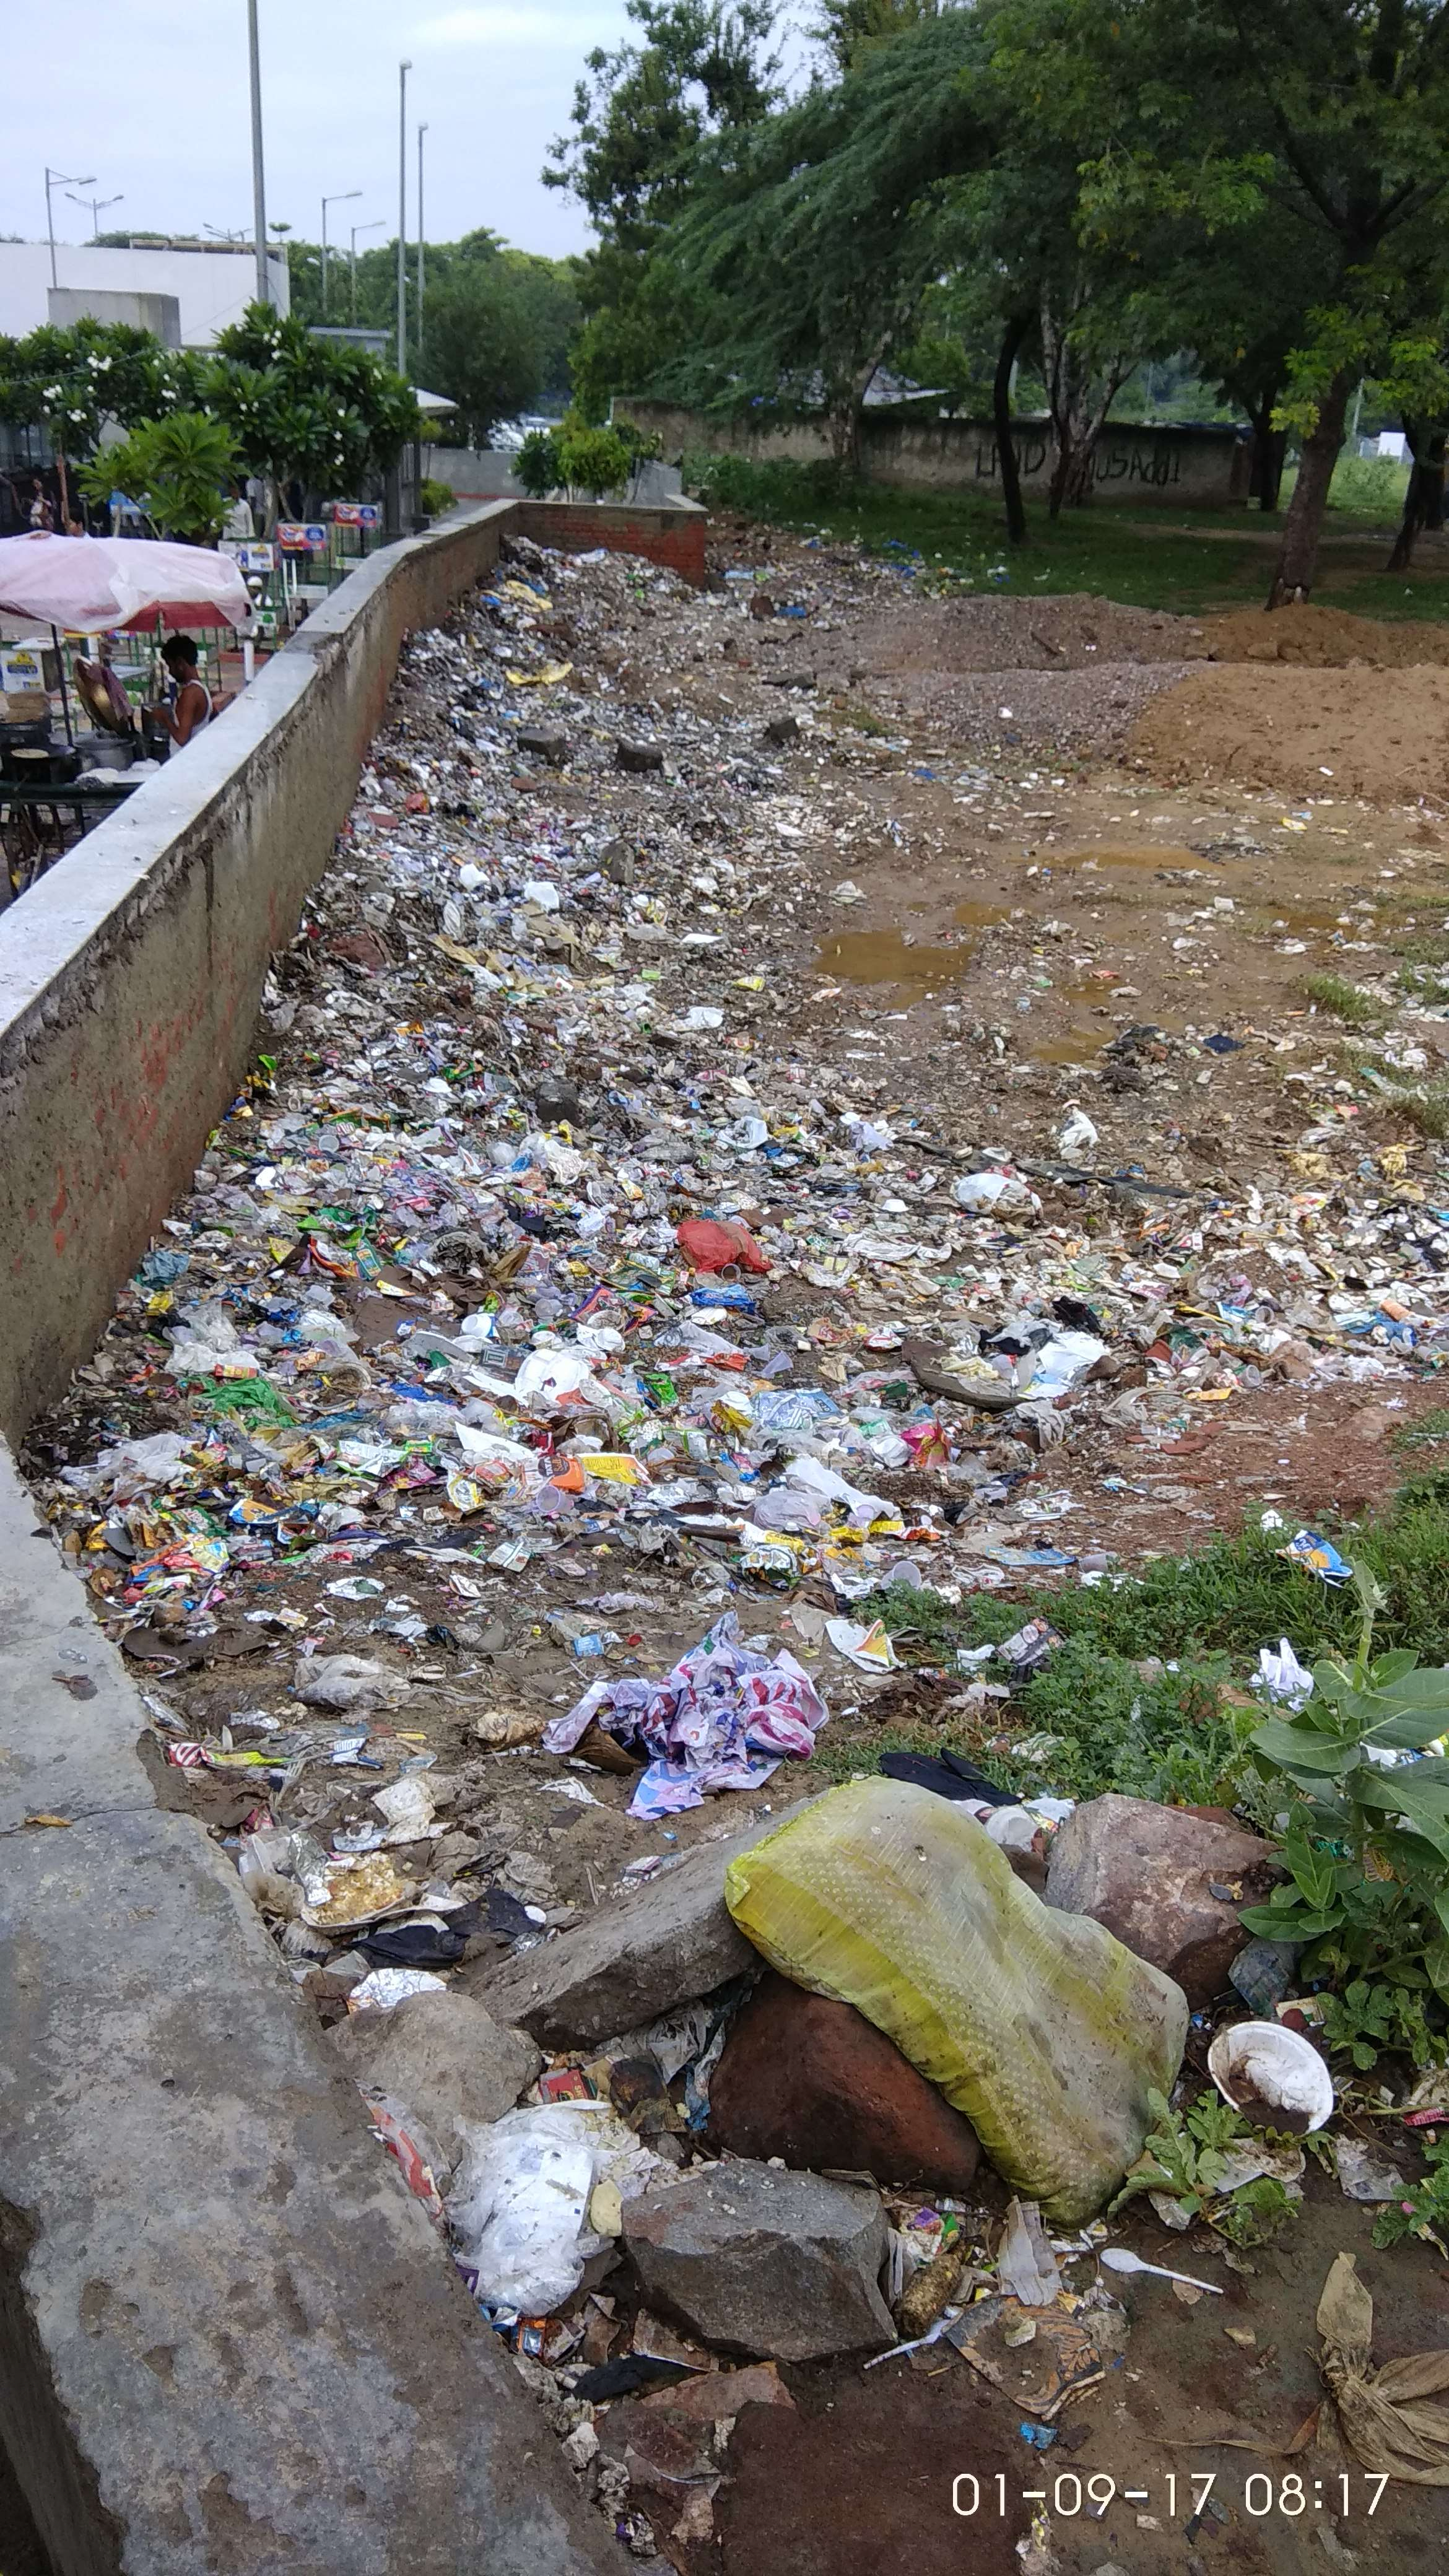 thane mulund dumping ground breeds diseases The garbage dumping ground at the border of thane -mulund the dumping ground also breeds bandicoots/rats that dig control the spread of diseases and spray.